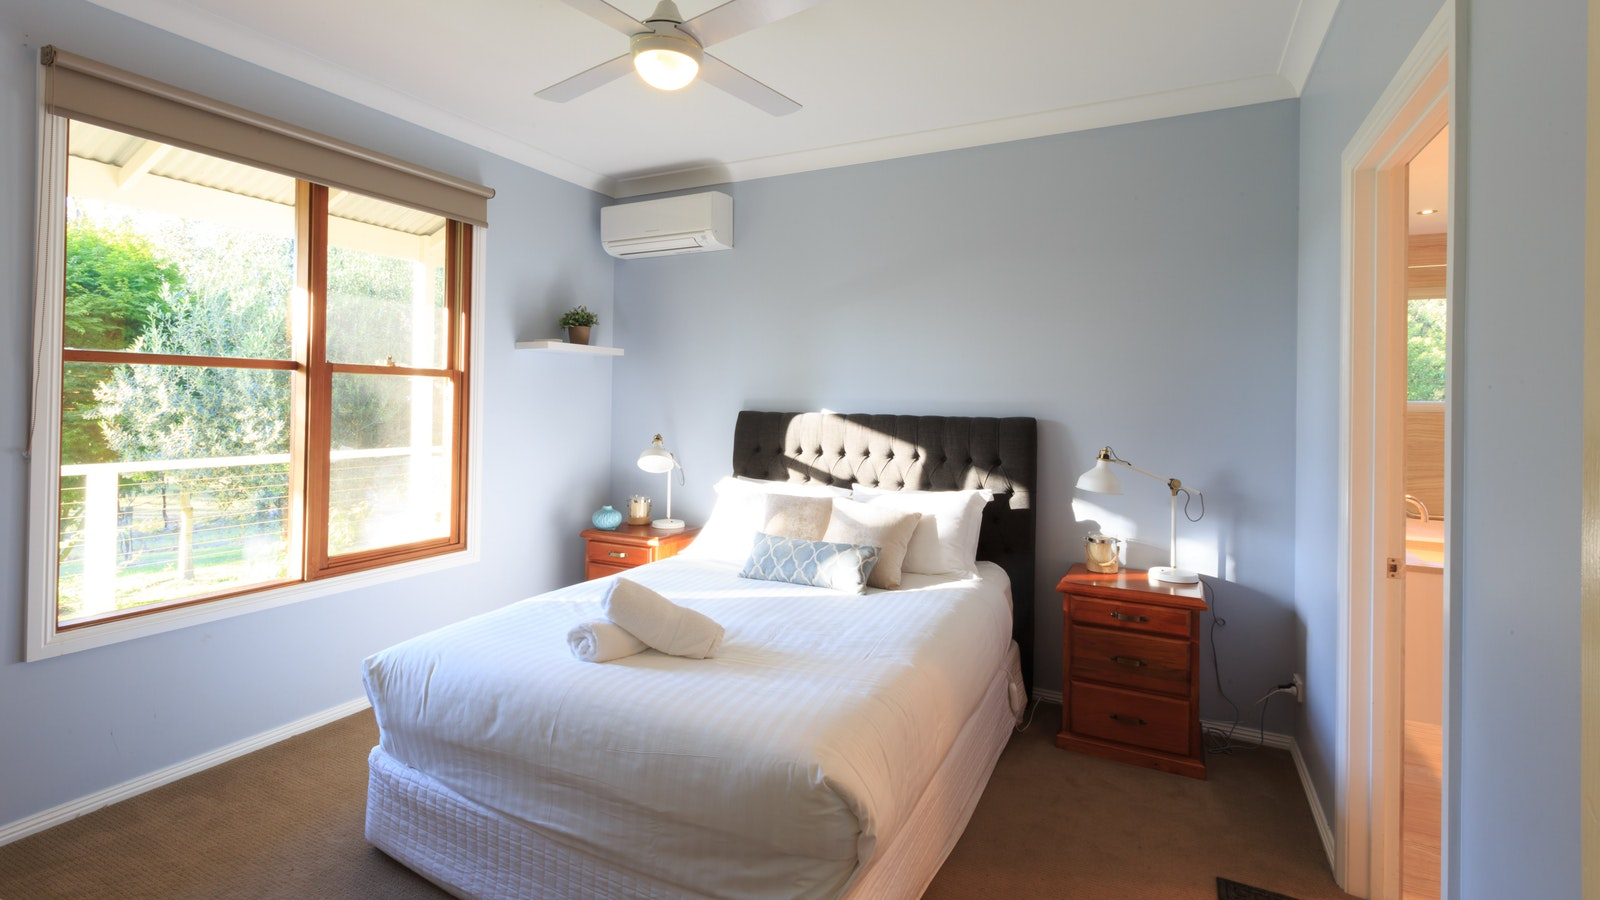 Master bedroom features a queen size bed with king coil mattress and spacious en suite bathroom